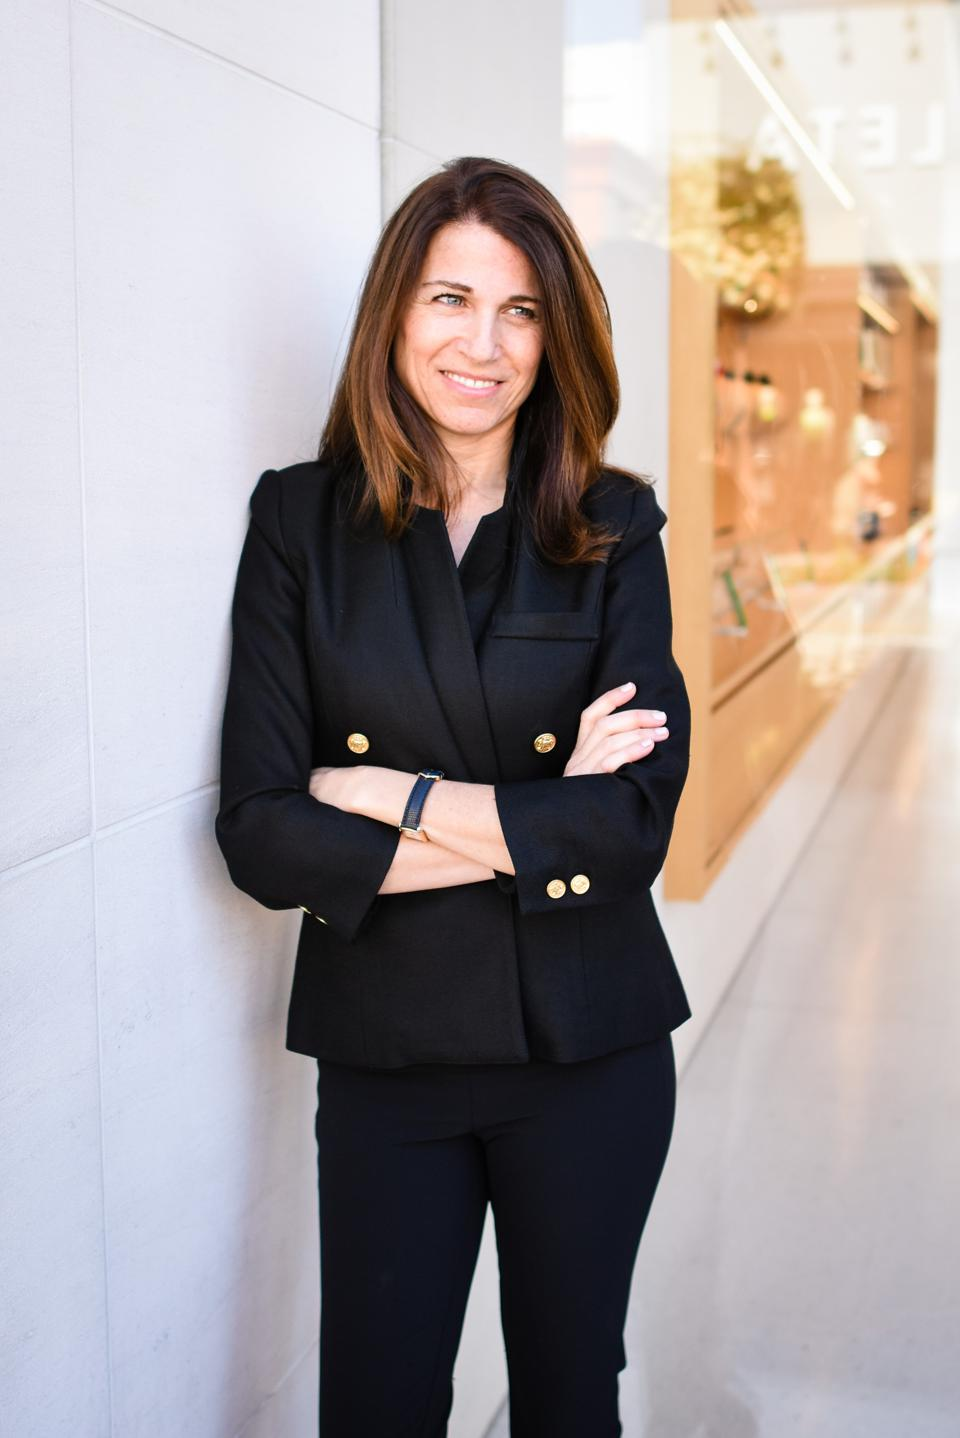 The Yes Co-Founder Julie Bornstein